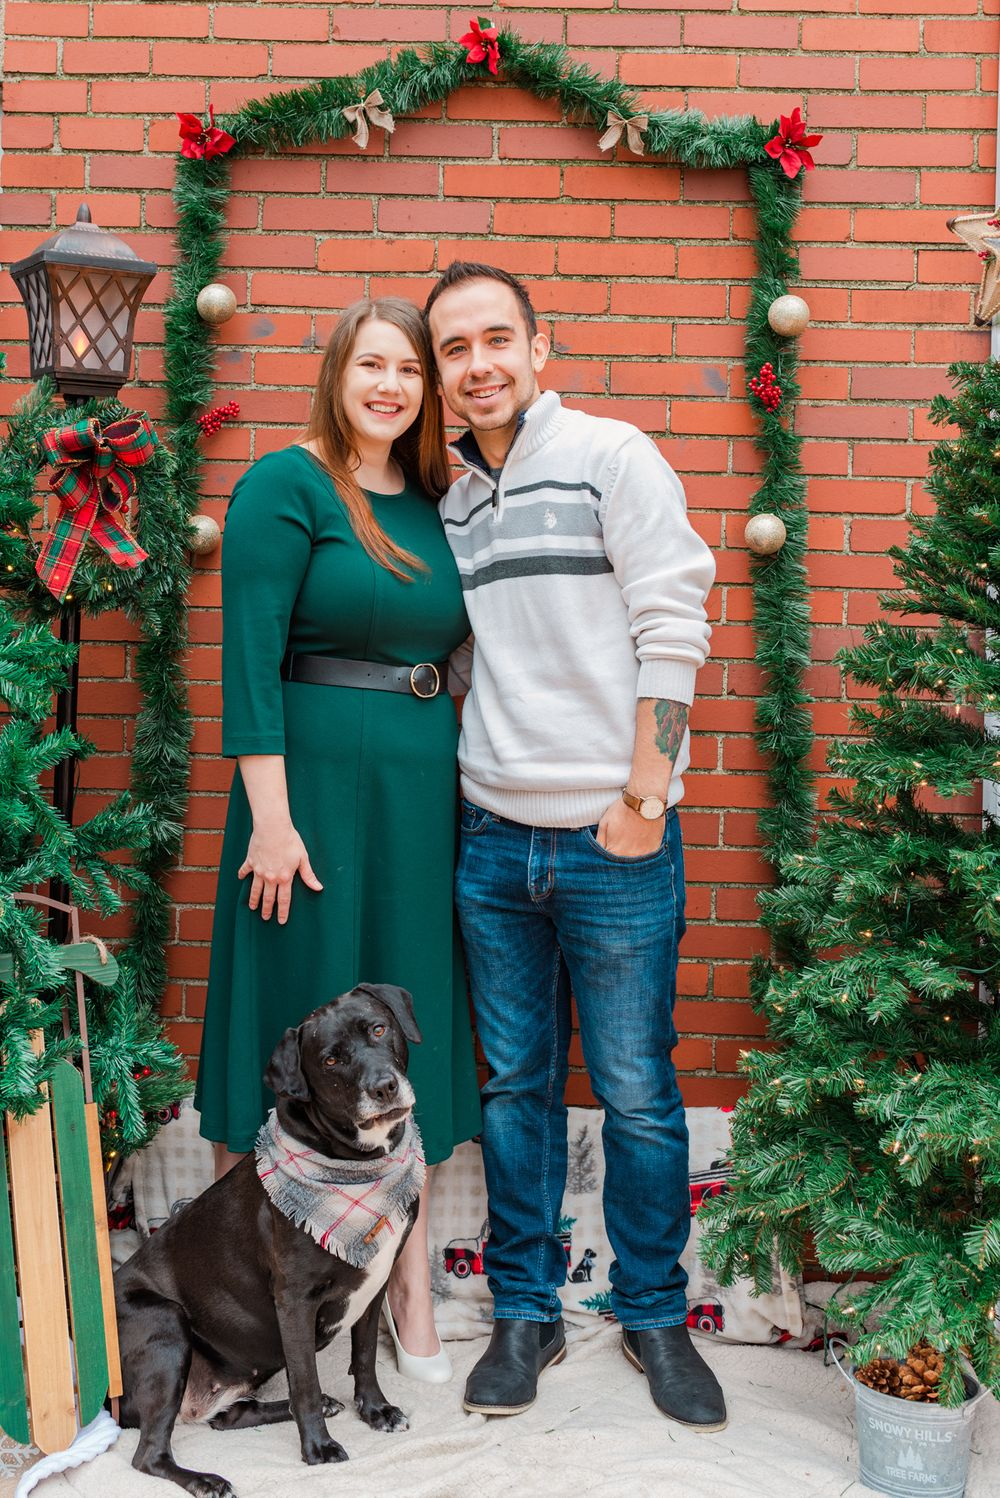 Holiday Christmas shoot with surprise proposal in Pittsburgh, Pennsylvania